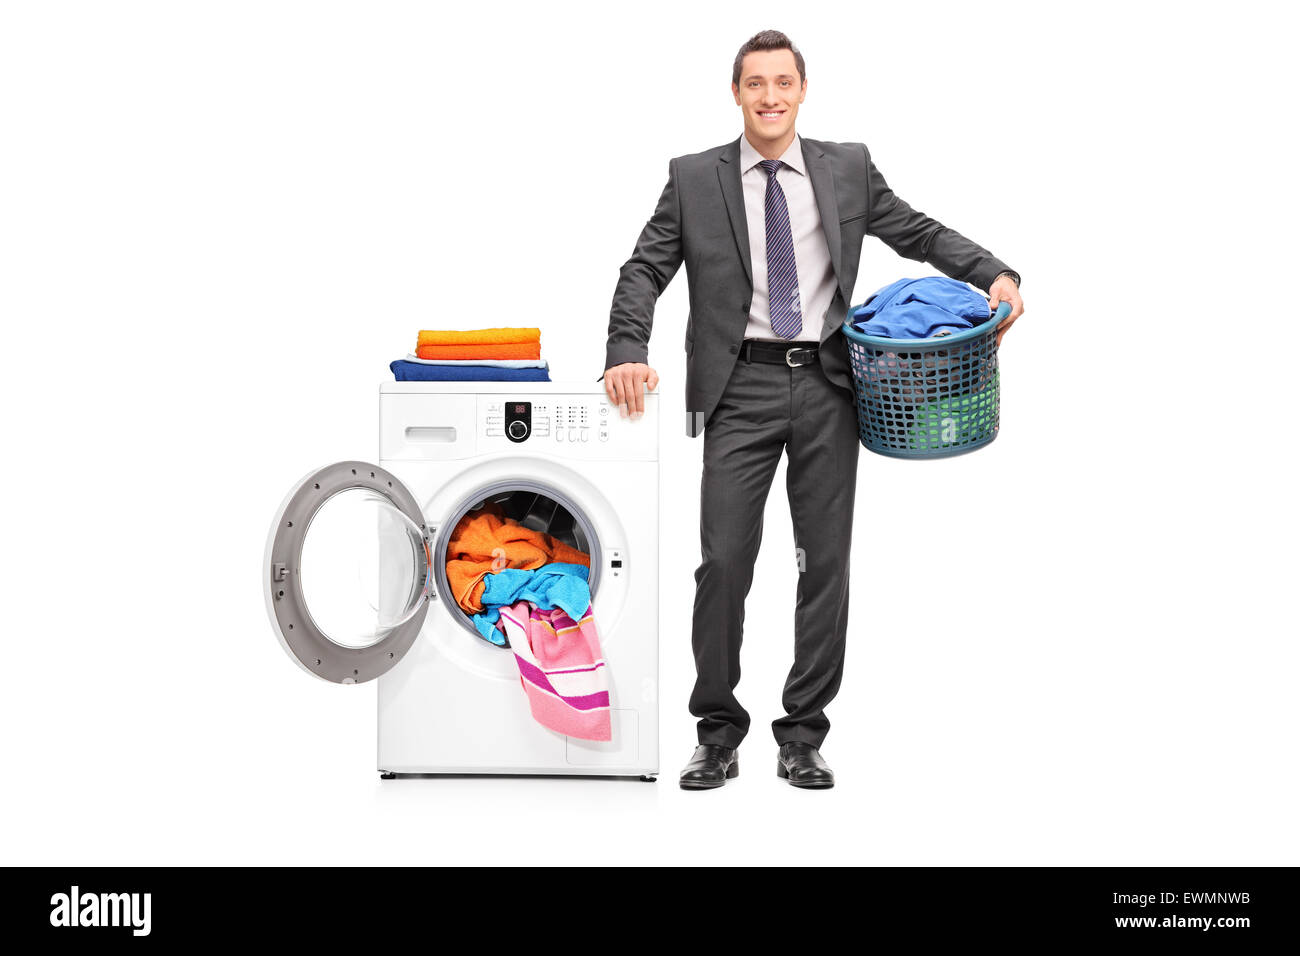 Full length portrait of a young businessman holding a laundry basket and posing next to a washing machine isolated - Stock Image